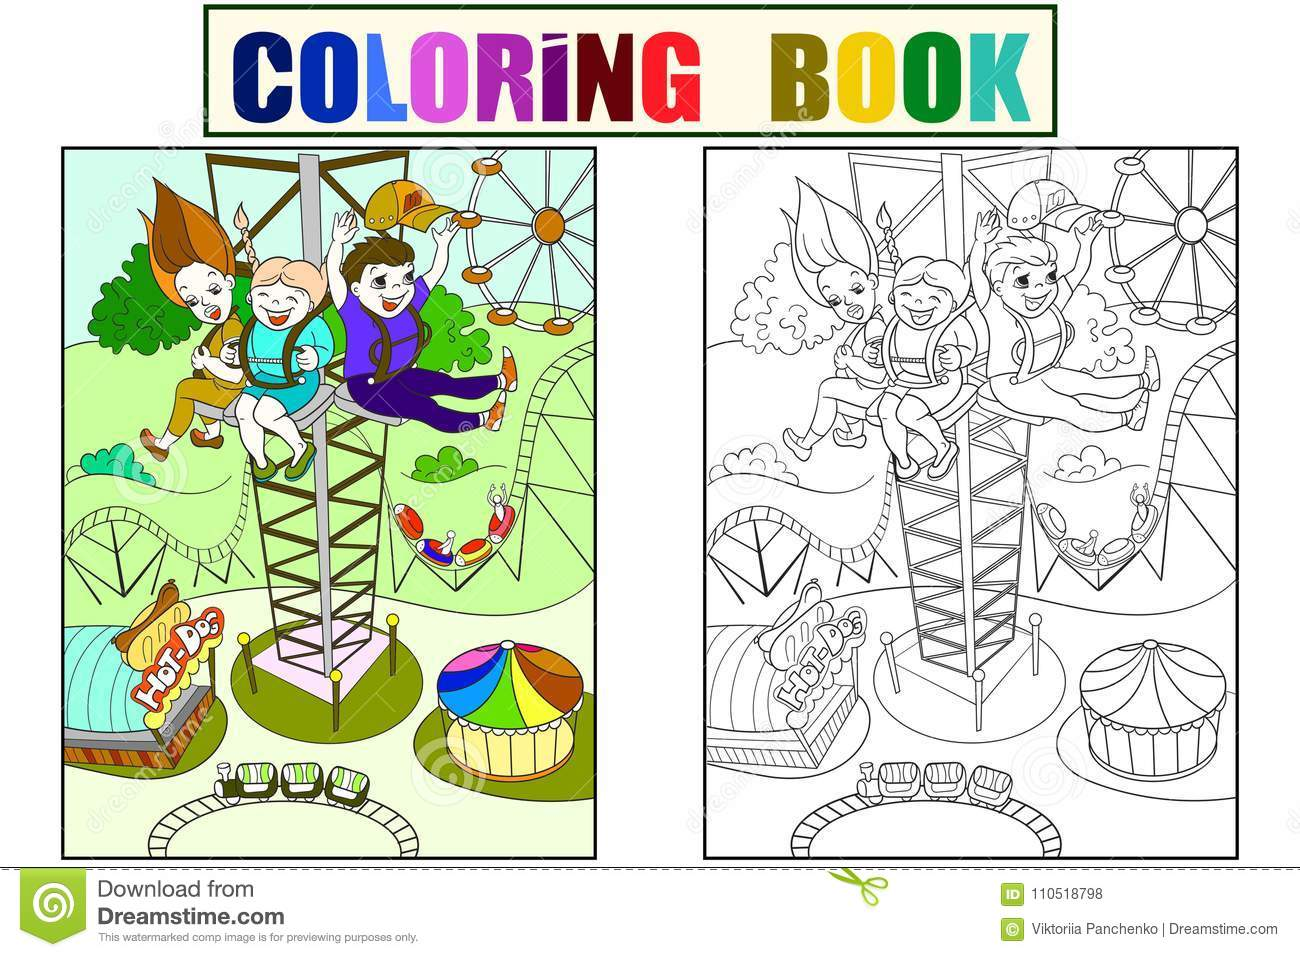 Thrill From A Free Fall From This Tower. Color Book Black Lines On A ...